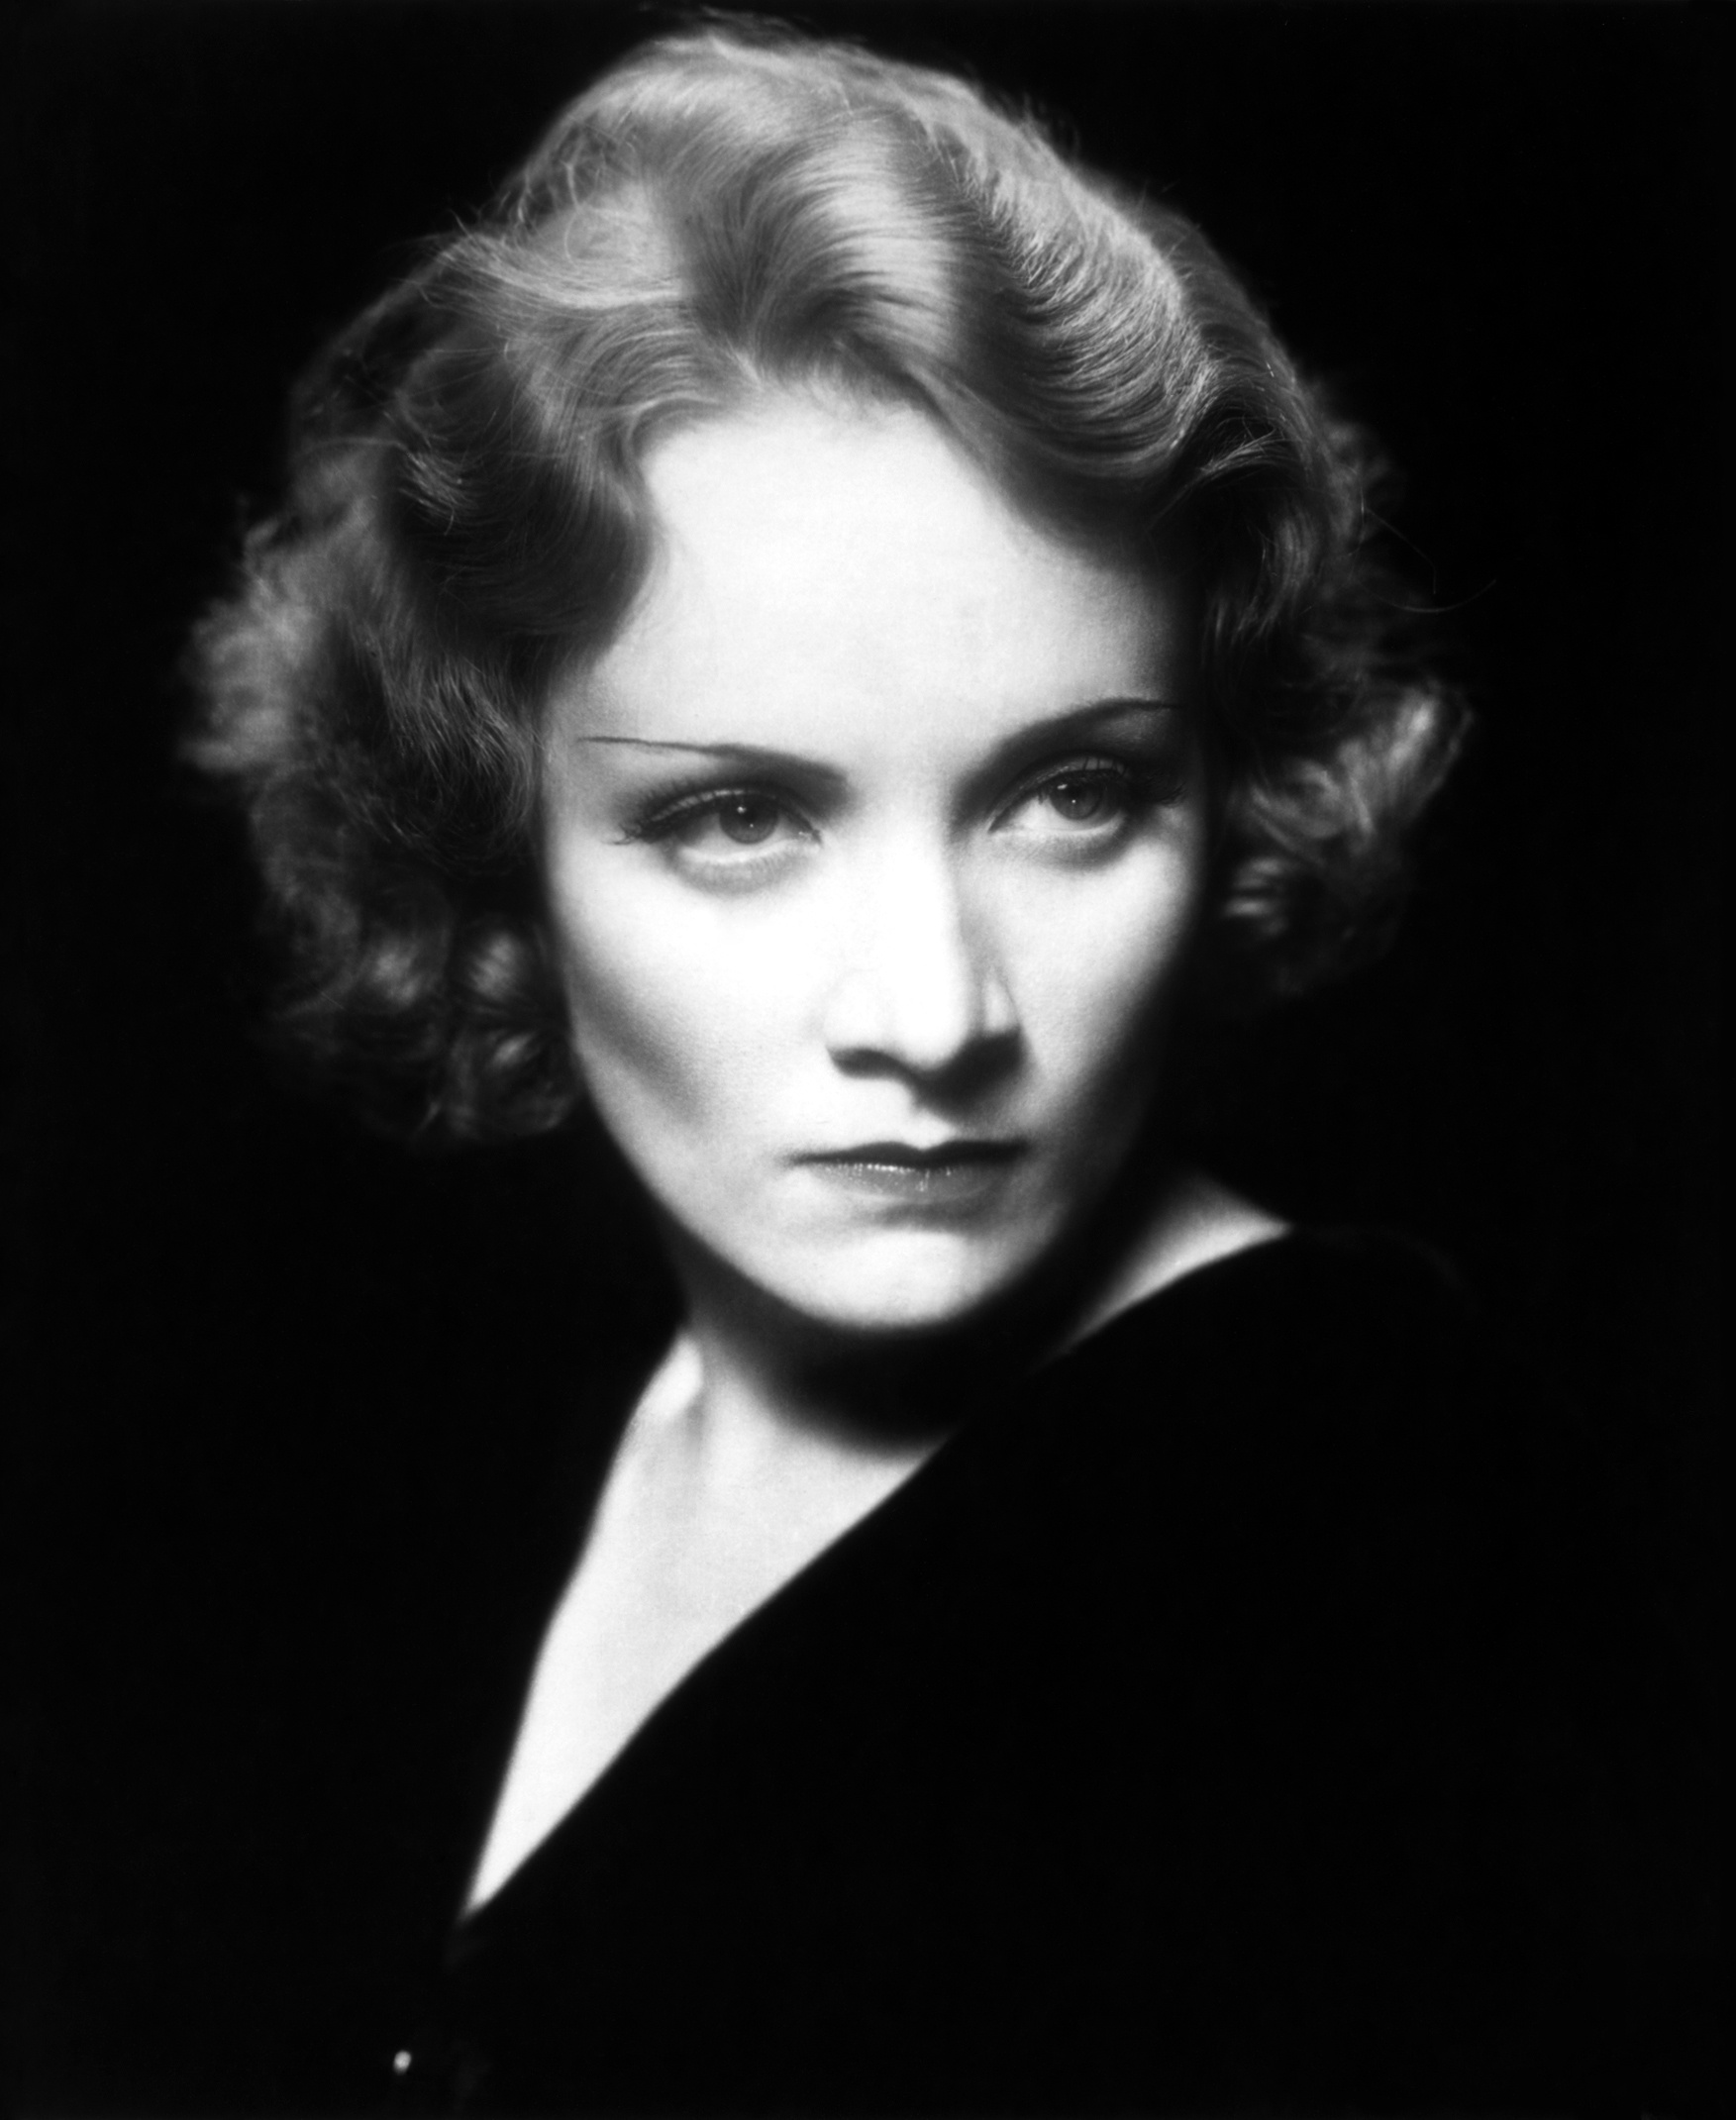 Marlene Dietrich images 1 from 10